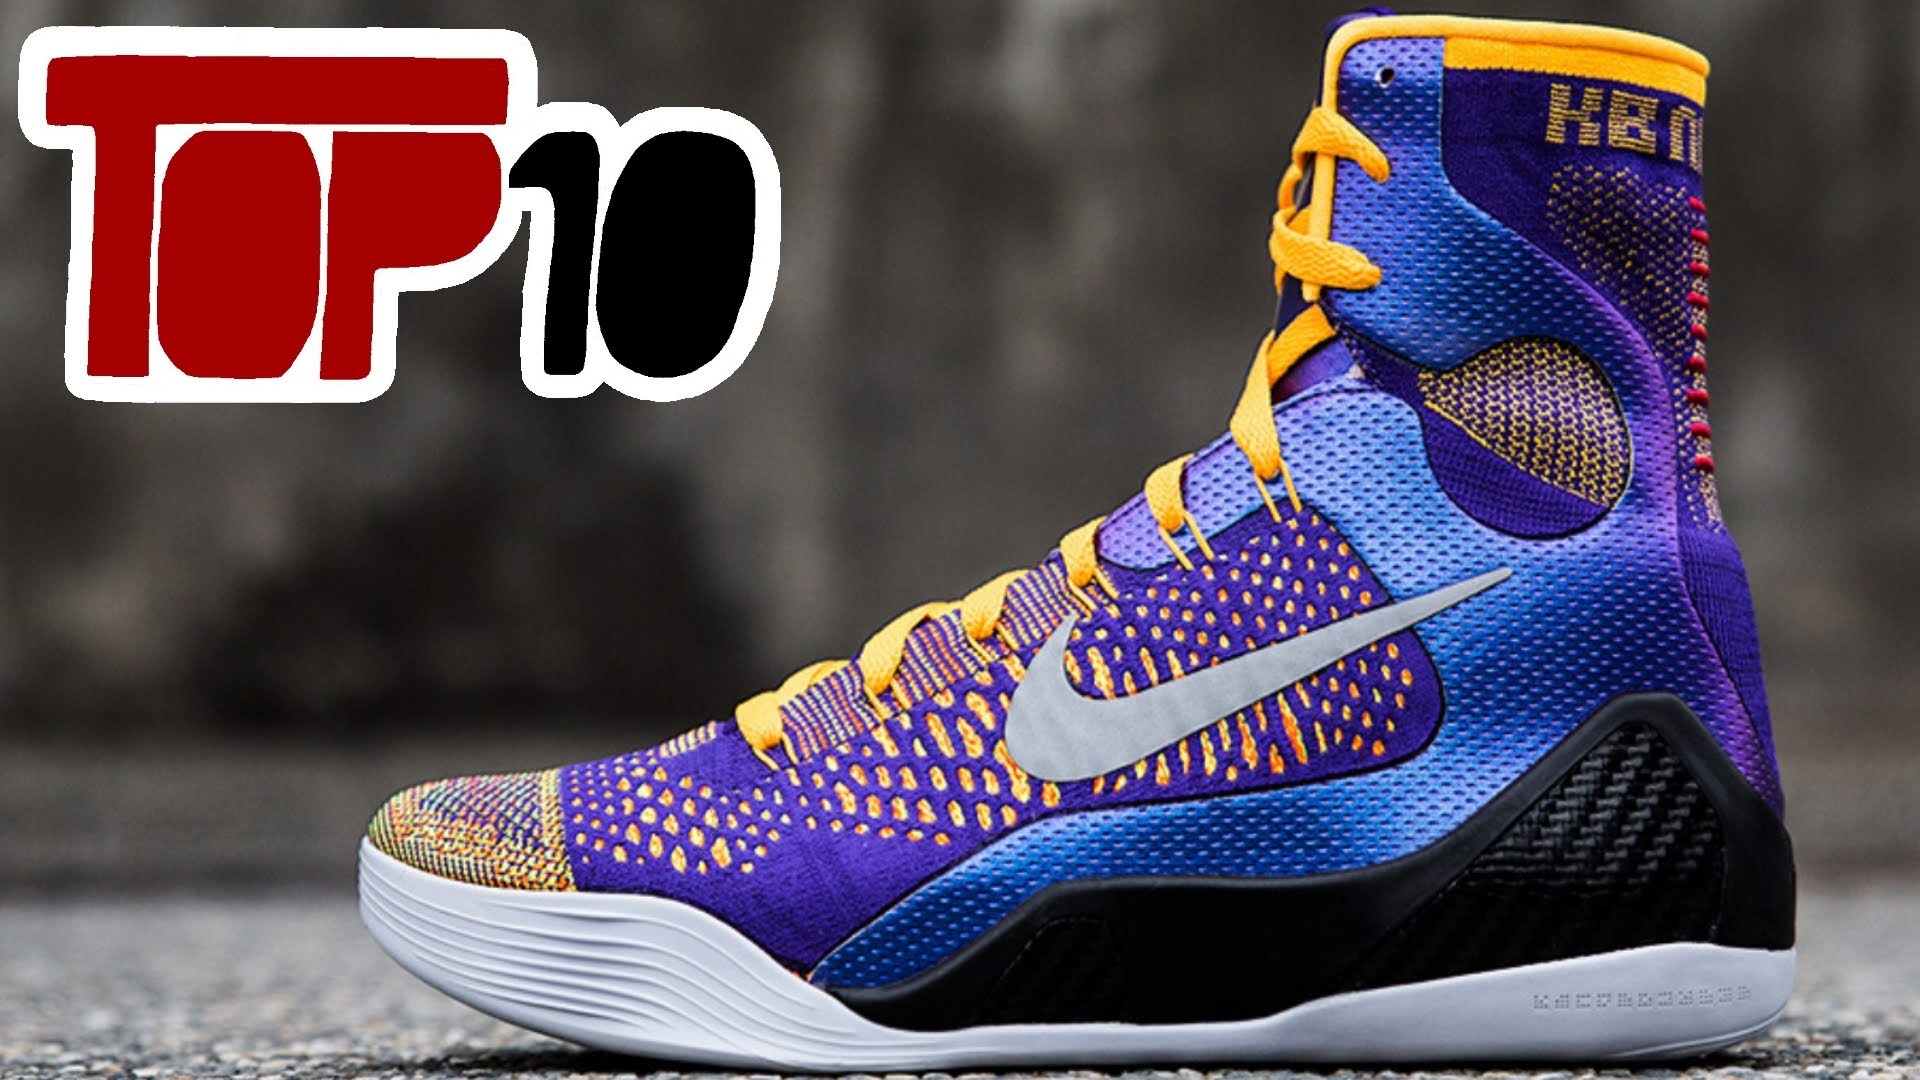 ▷ Top 10 Best Basketball Shoes of 2017 ⇒ Top10Geeks.com